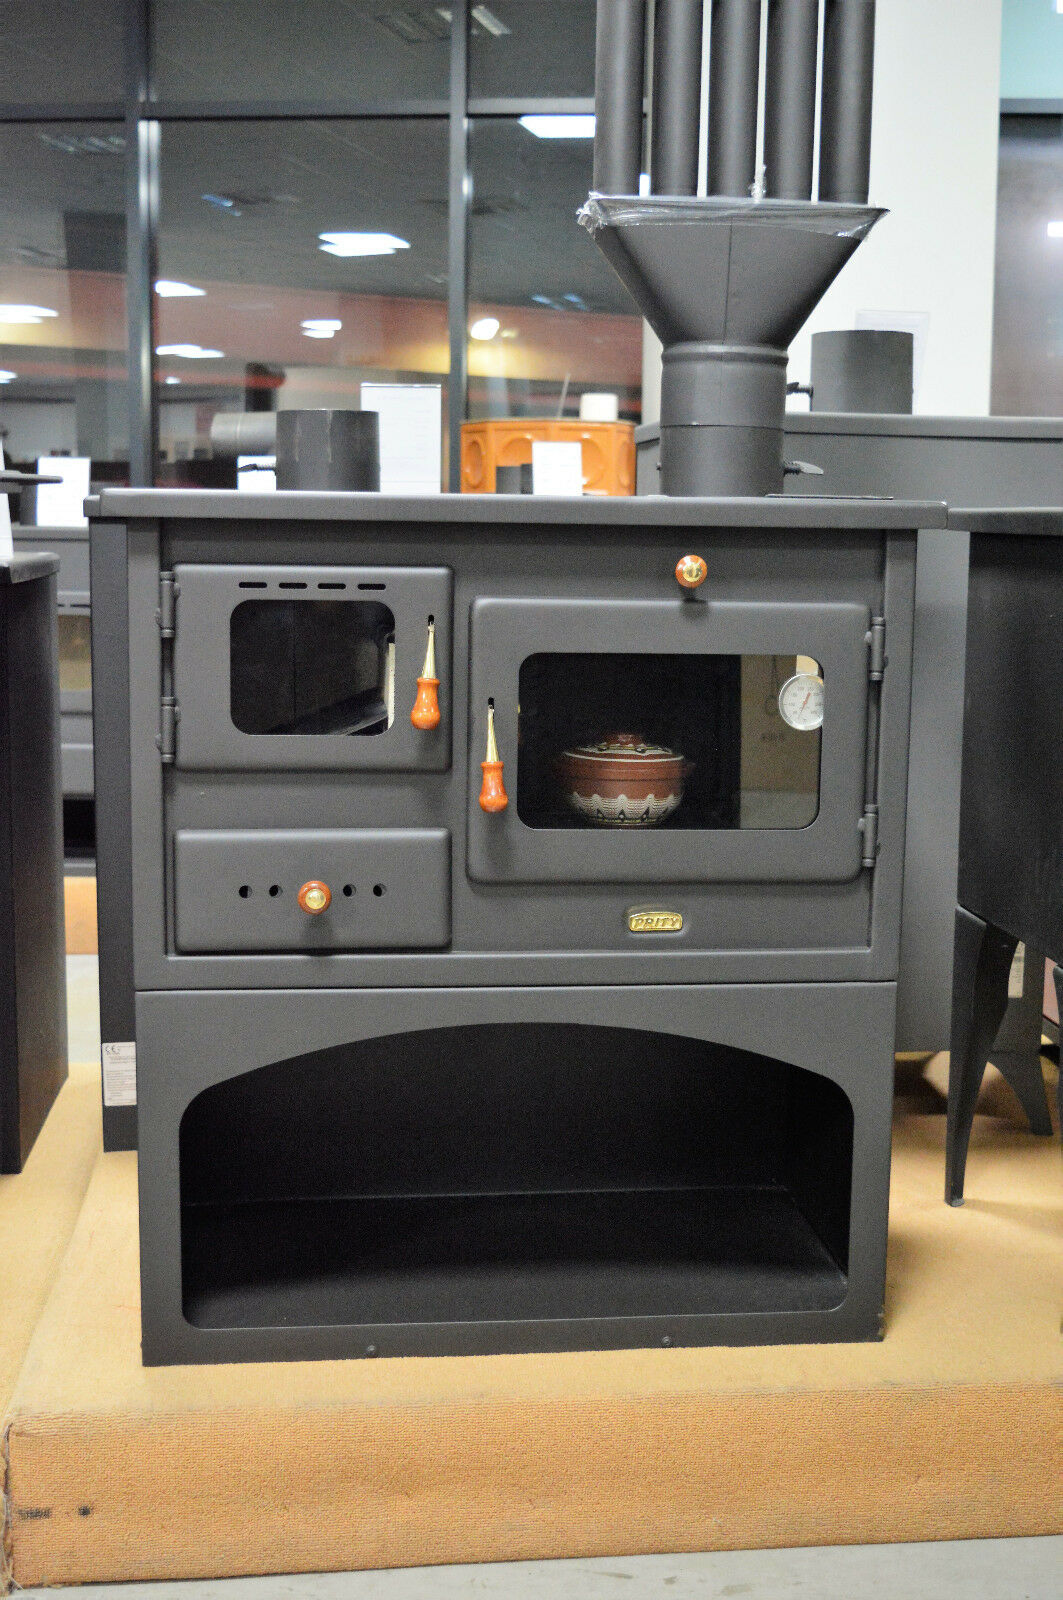 holz verbrennung gusseisen top feste brennstoffe kochen herd kamin mit 10 kw ebay. Black Bedroom Furniture Sets. Home Design Ideas